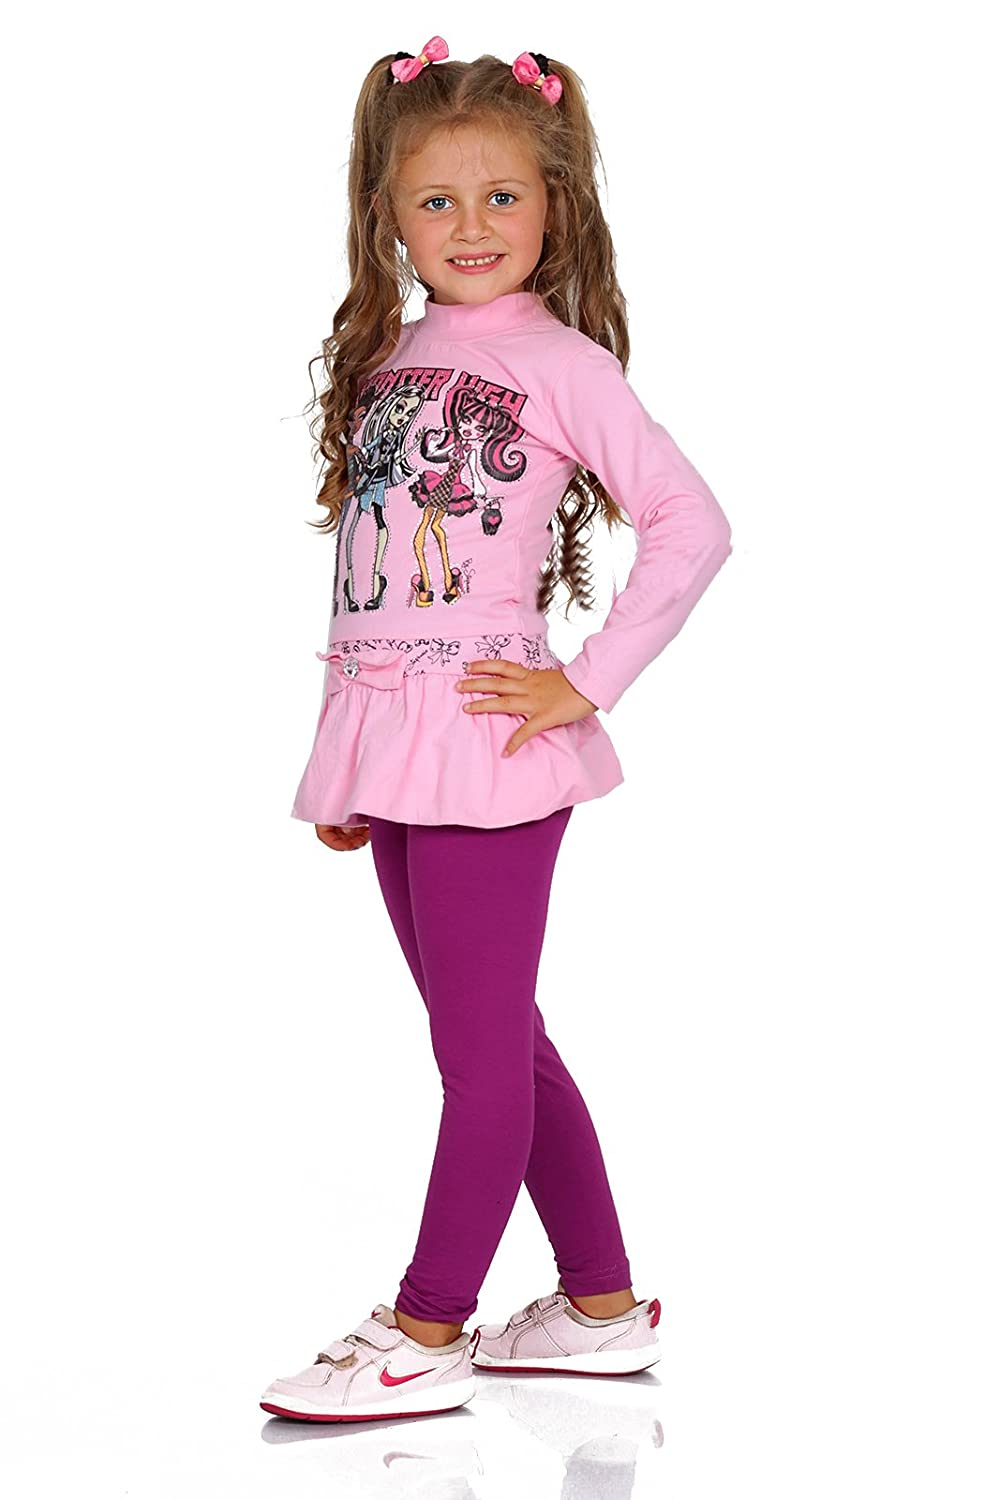 Futuro Fashion Full Length Cotton Girls Leggings Plain Pants for Kids Amaranth Leggings Age 6